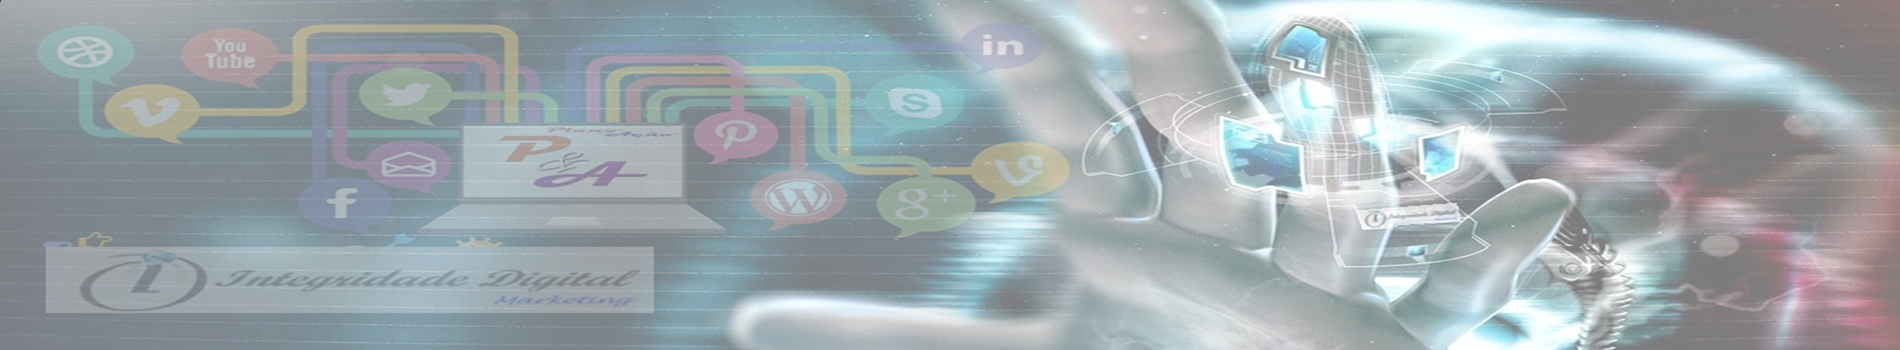 Astonishing technology wallpapers hd stunning technology for Wallpaper mobile home walls